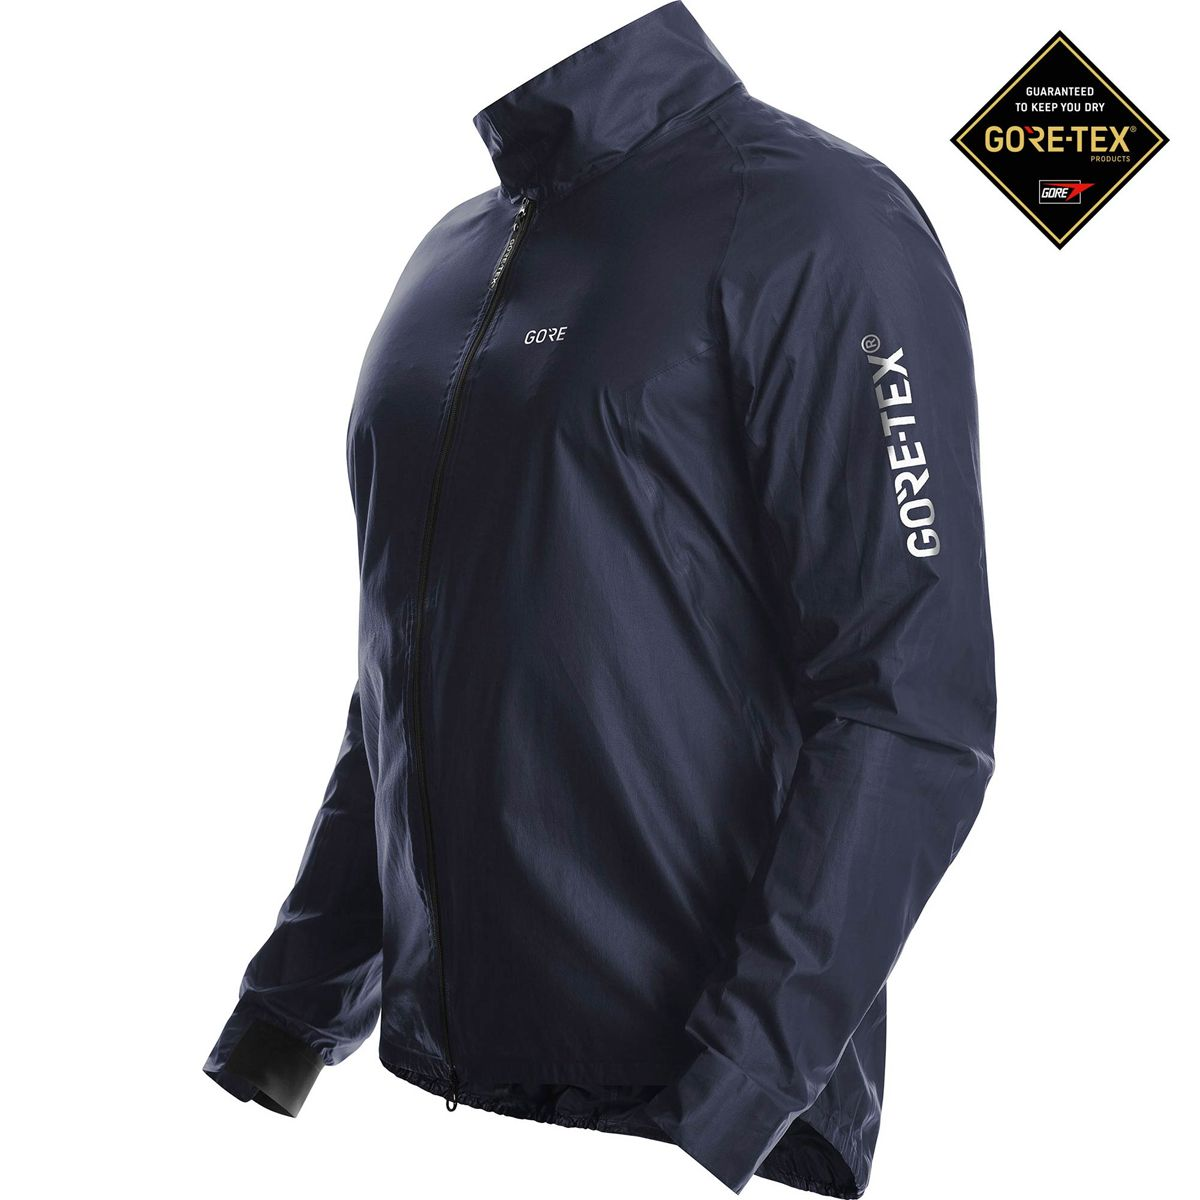 GORE WEAR C5 GORE-TEX SHAKEDRY 1985 JACKET | Jackets